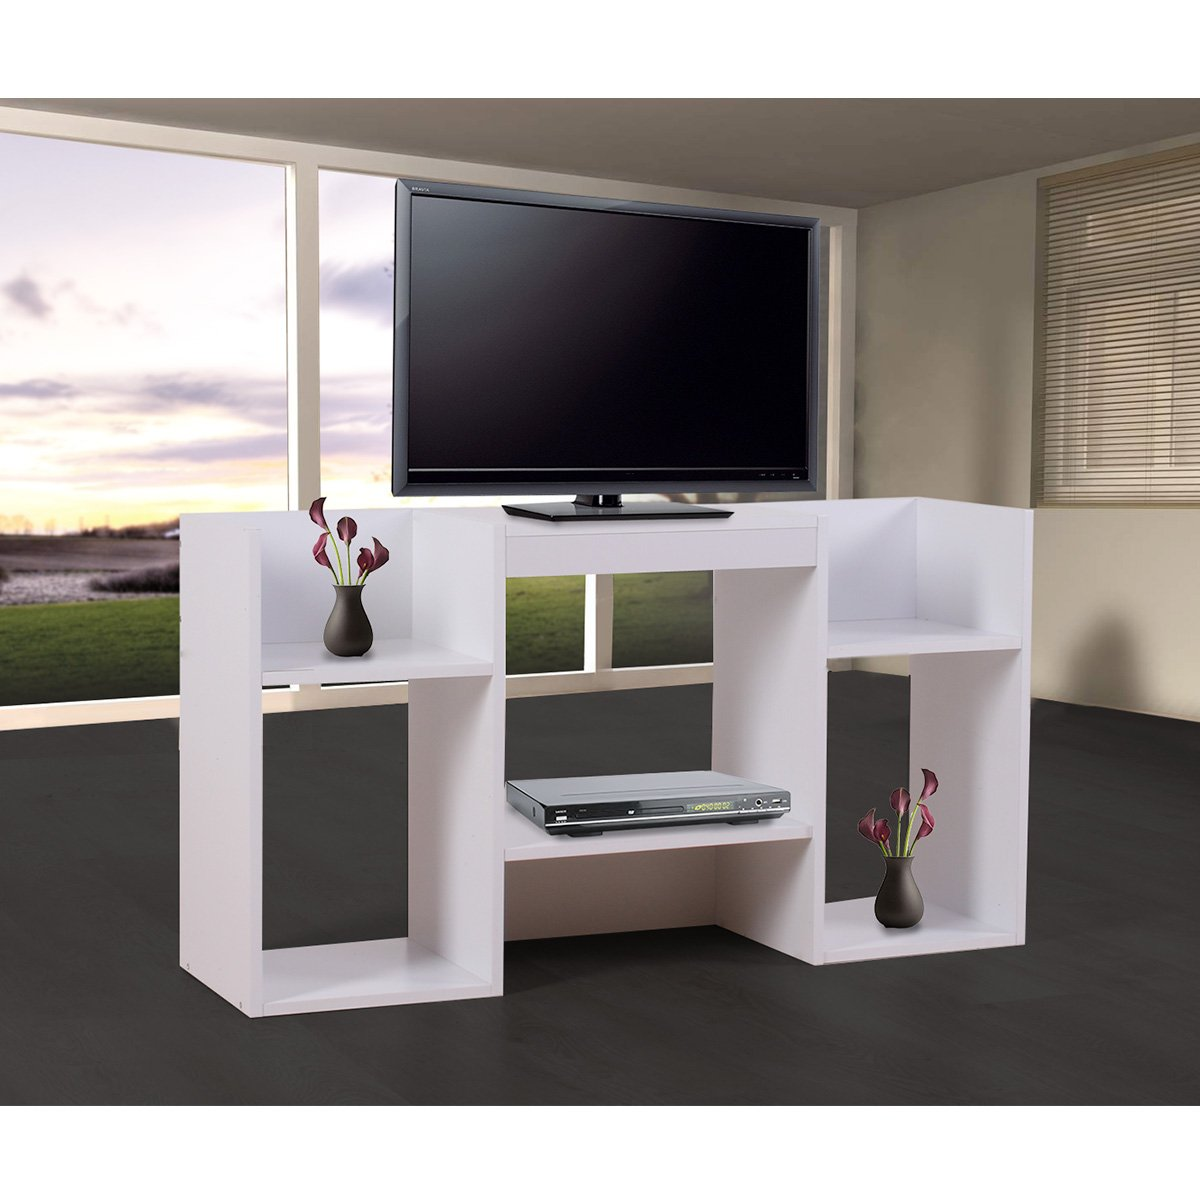 Mueble para tv soporte para tv de dise o 109x59x30 cm blanca for Muebles modernos living para tv